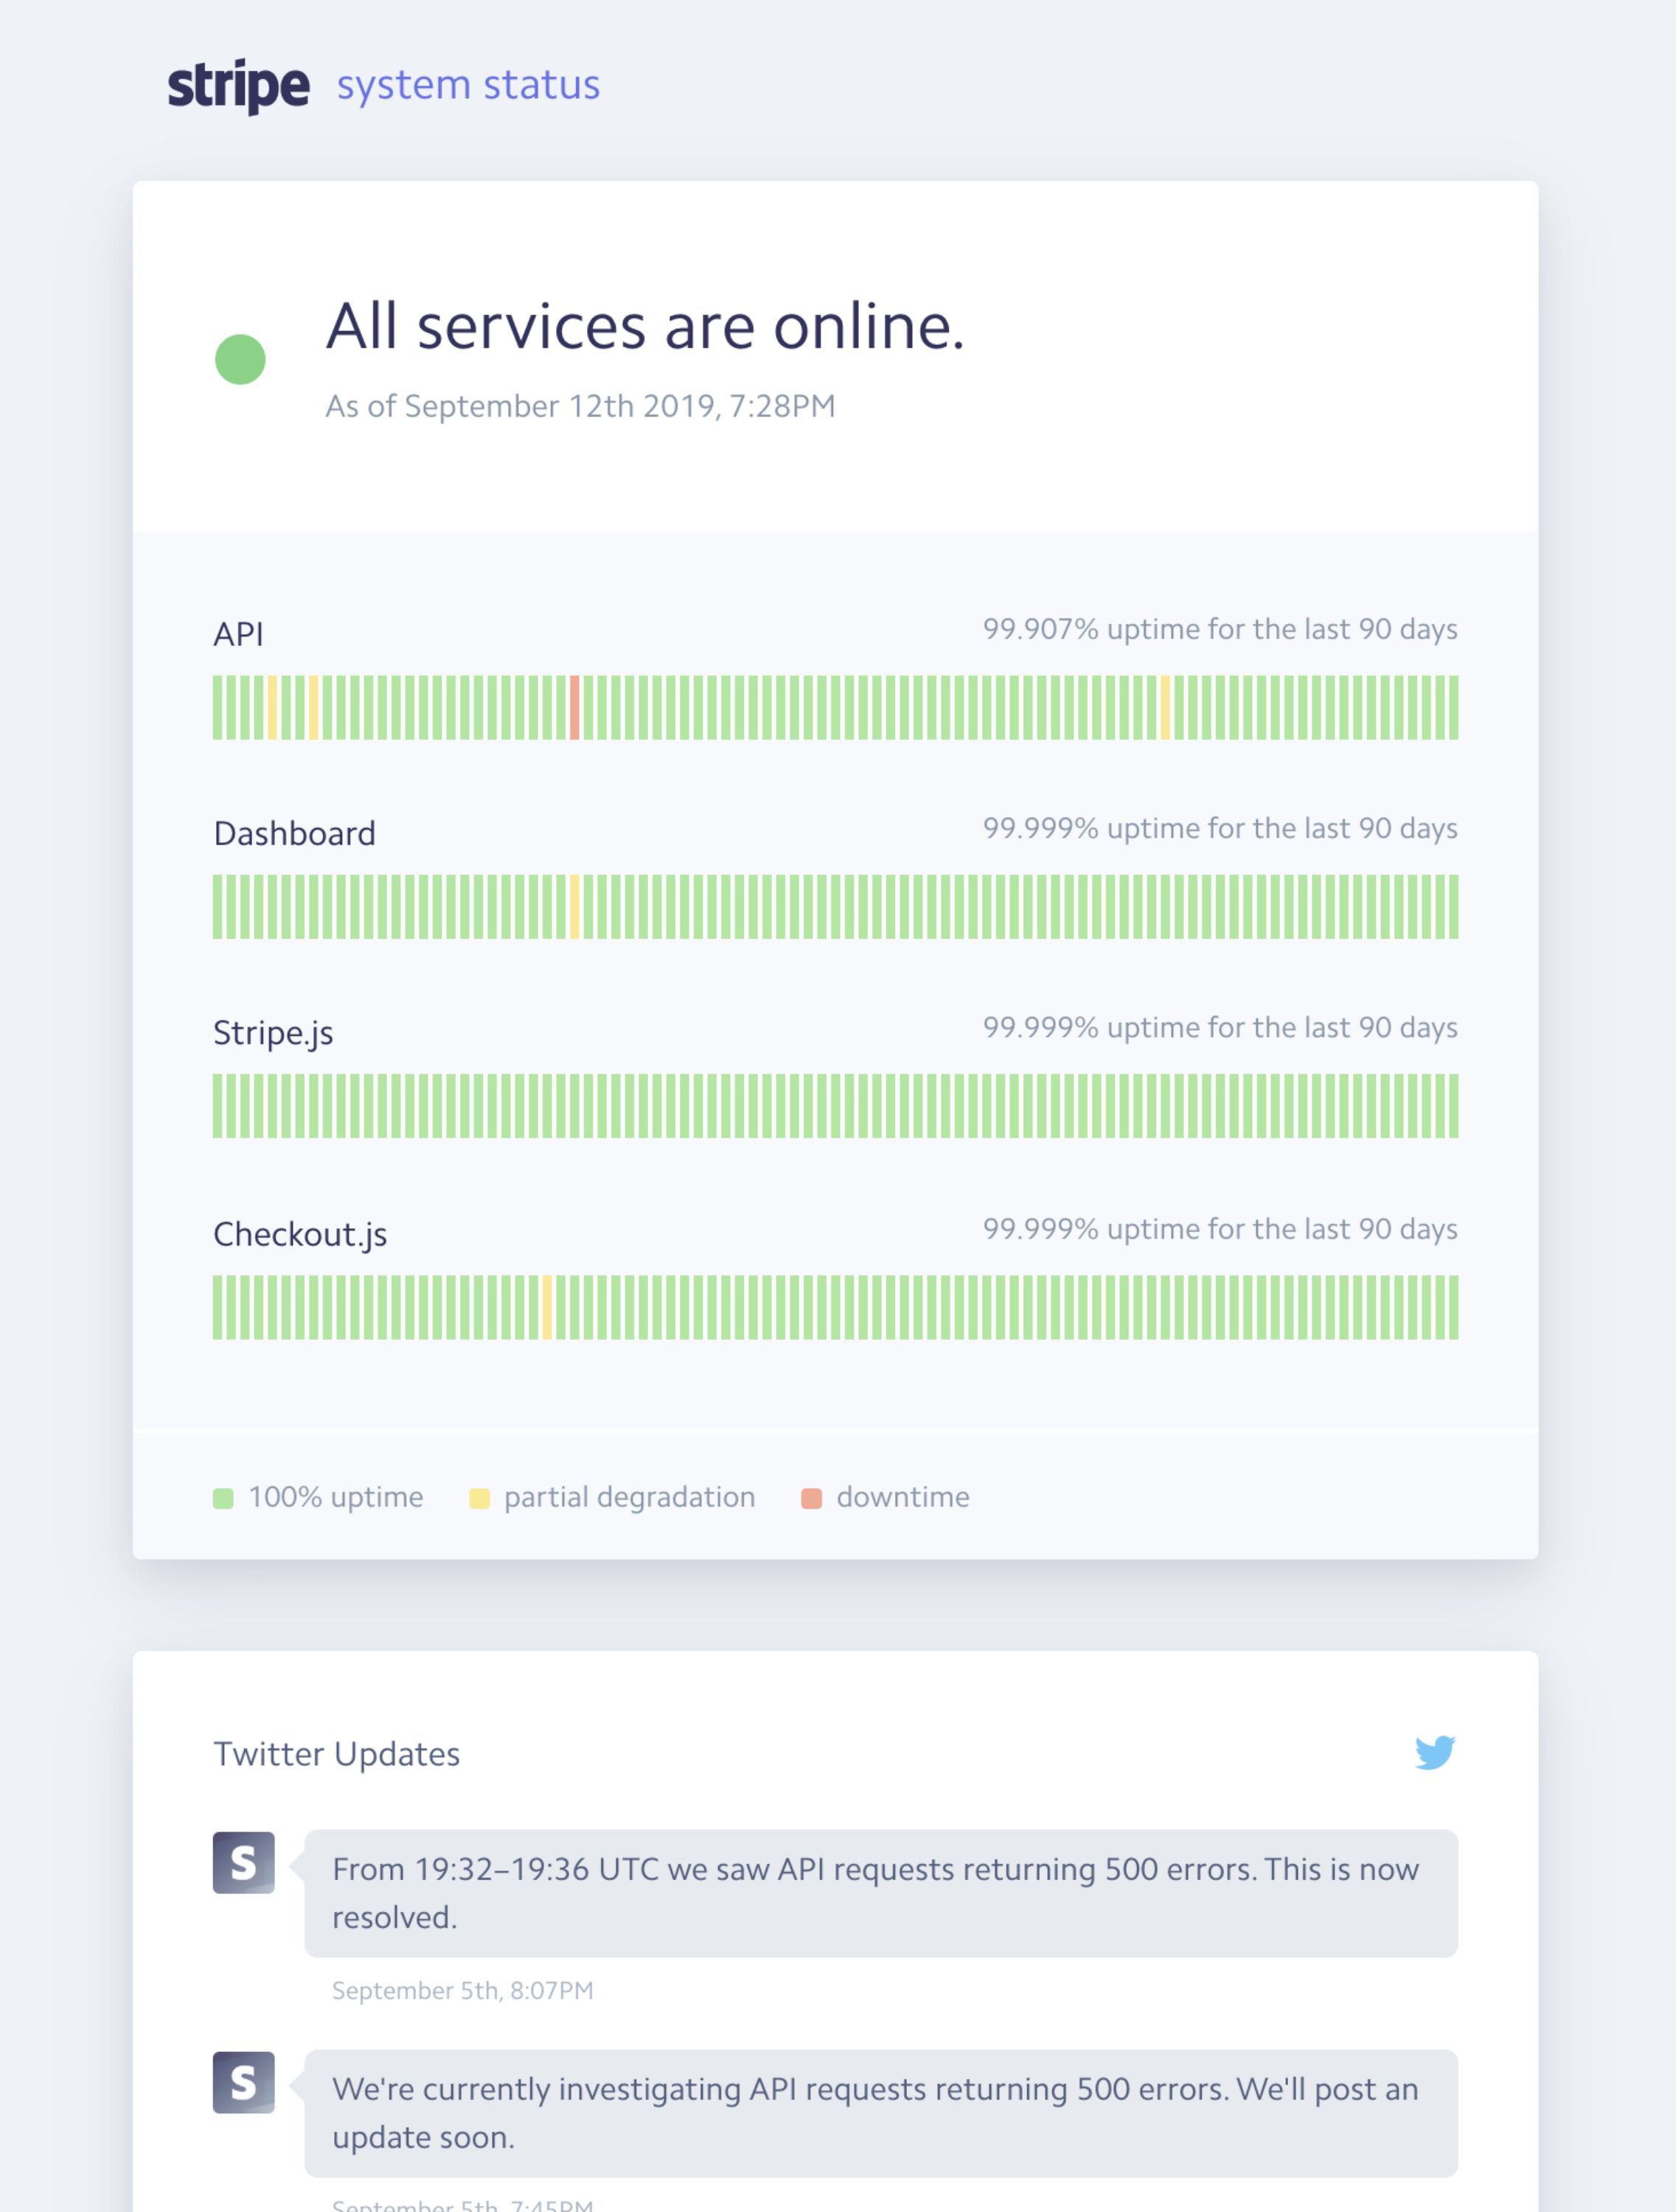 the stripe status page in 2019